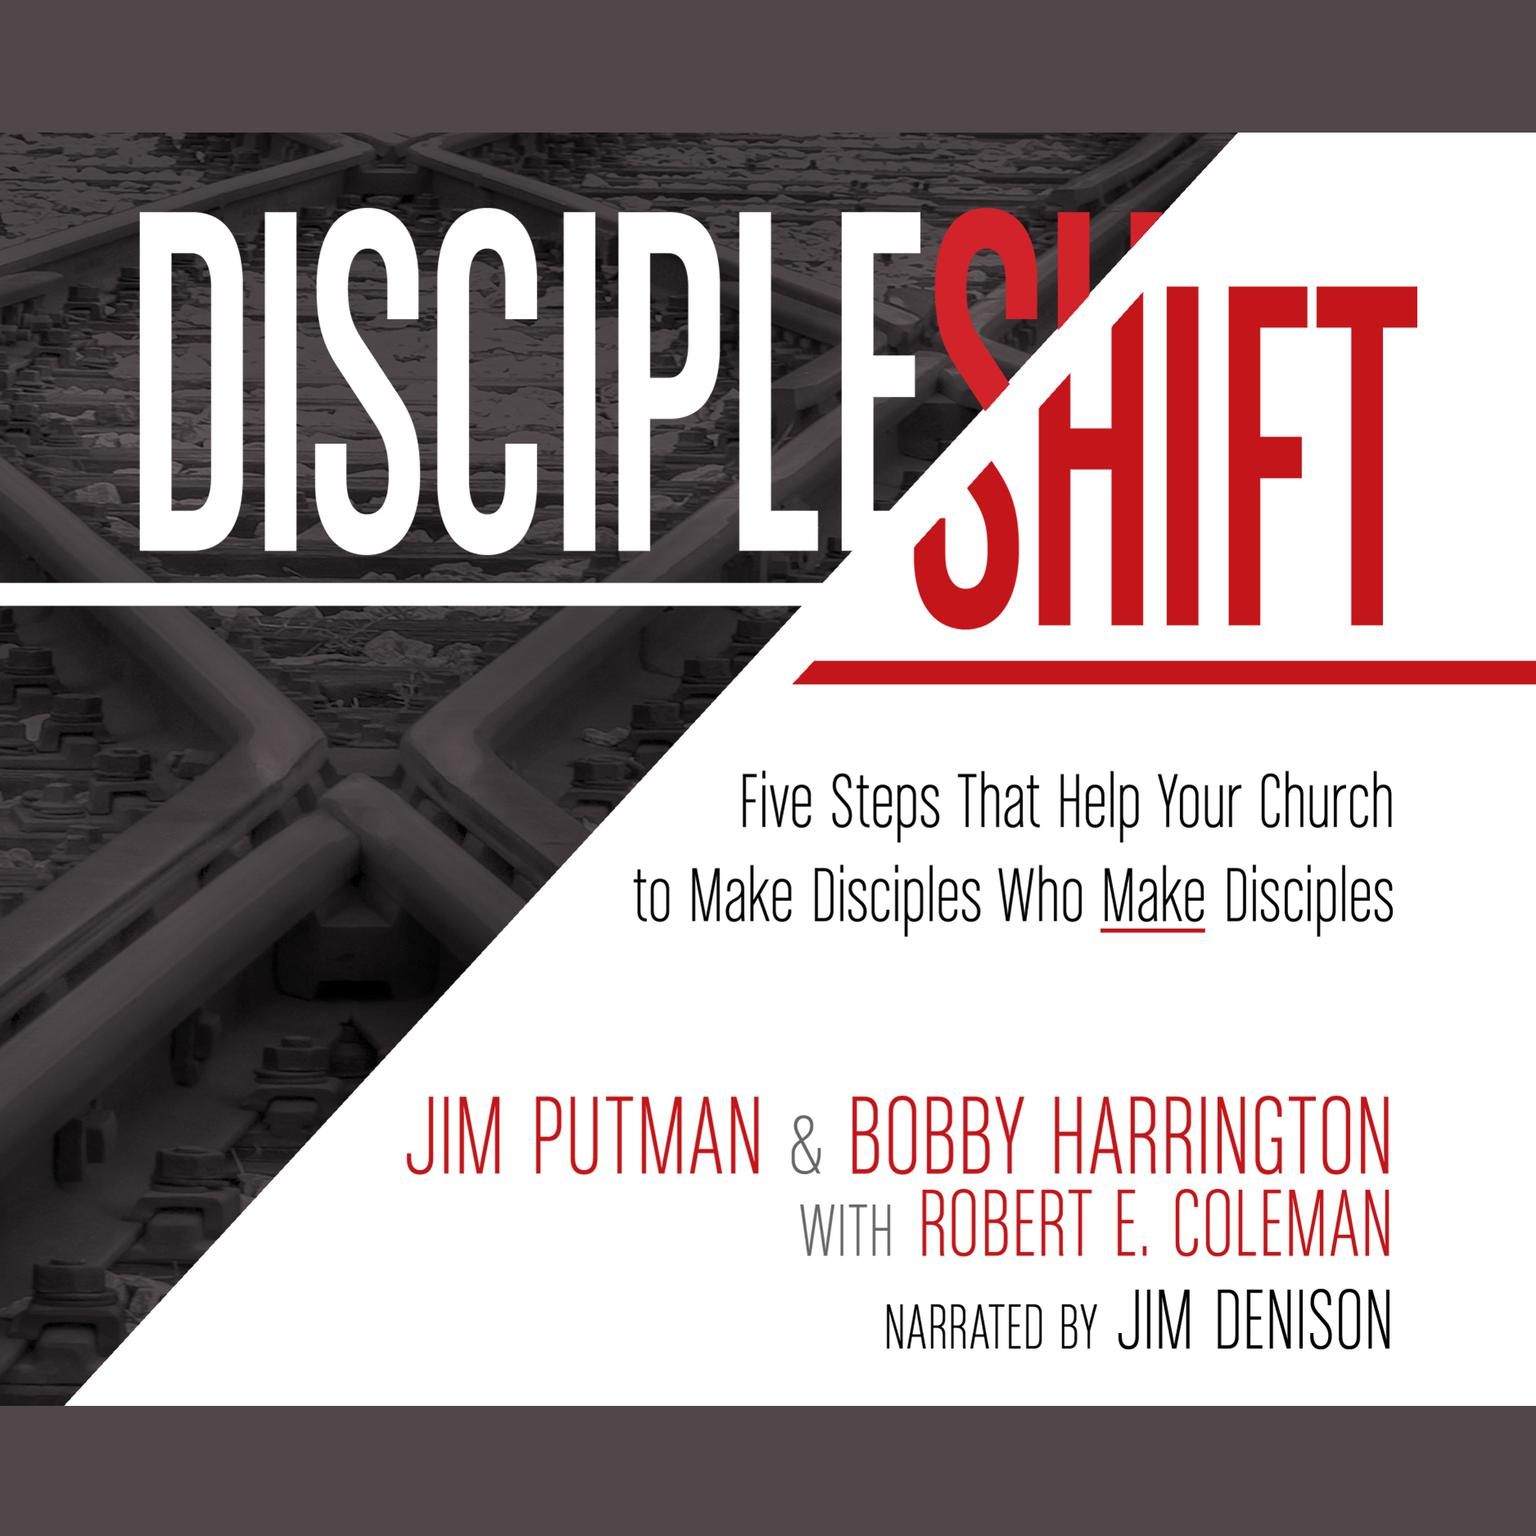 Printable DiscipleShift: Five Steps That Help Your Church to Make Disciples Who Make Disciples Audiobook Cover Art